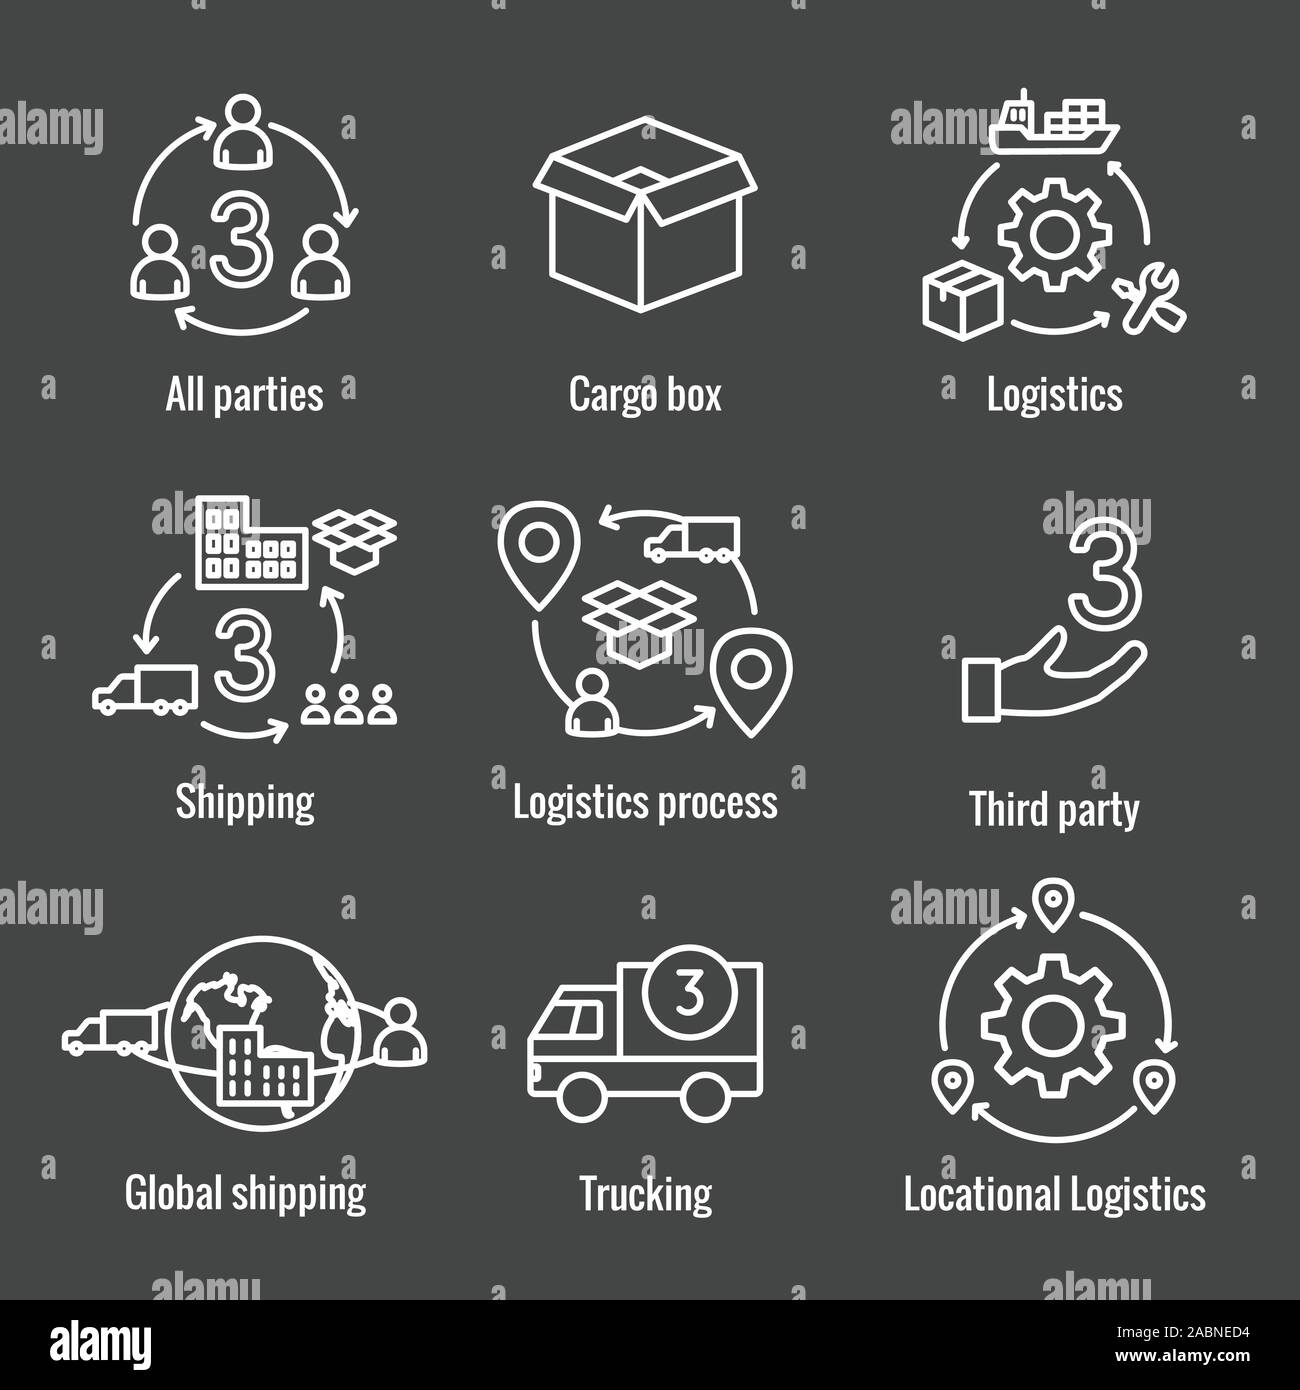 Logistics icon set w buildings, trucking, people and shipping box Stock Vector